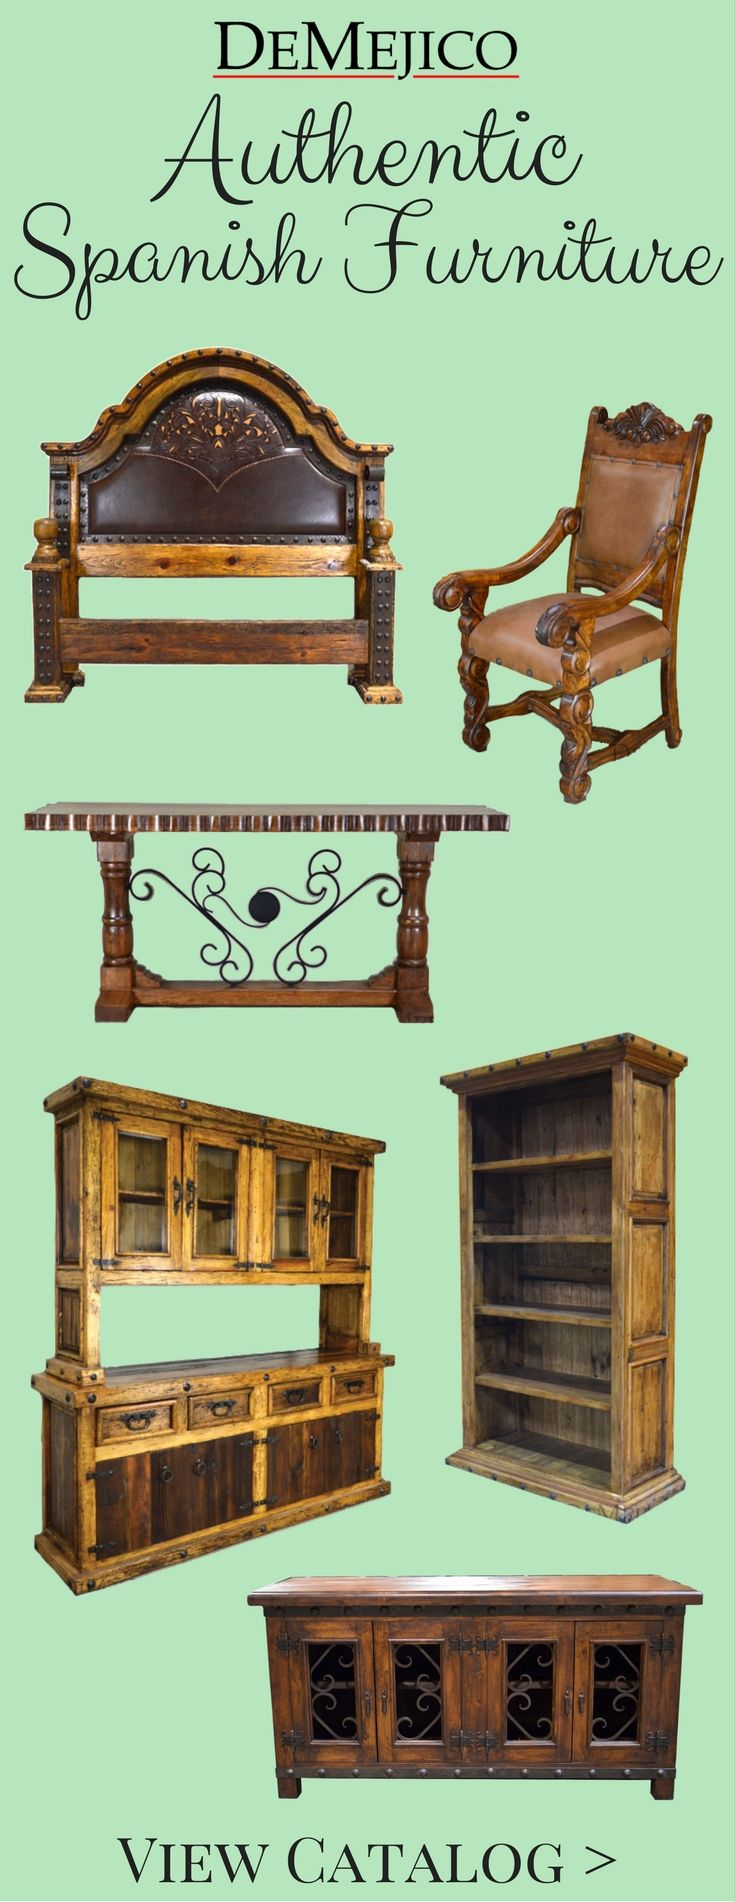 Authentic Handcrafted Rustic Spanish Style Furniture Custom Furniture Demejico Pinterest